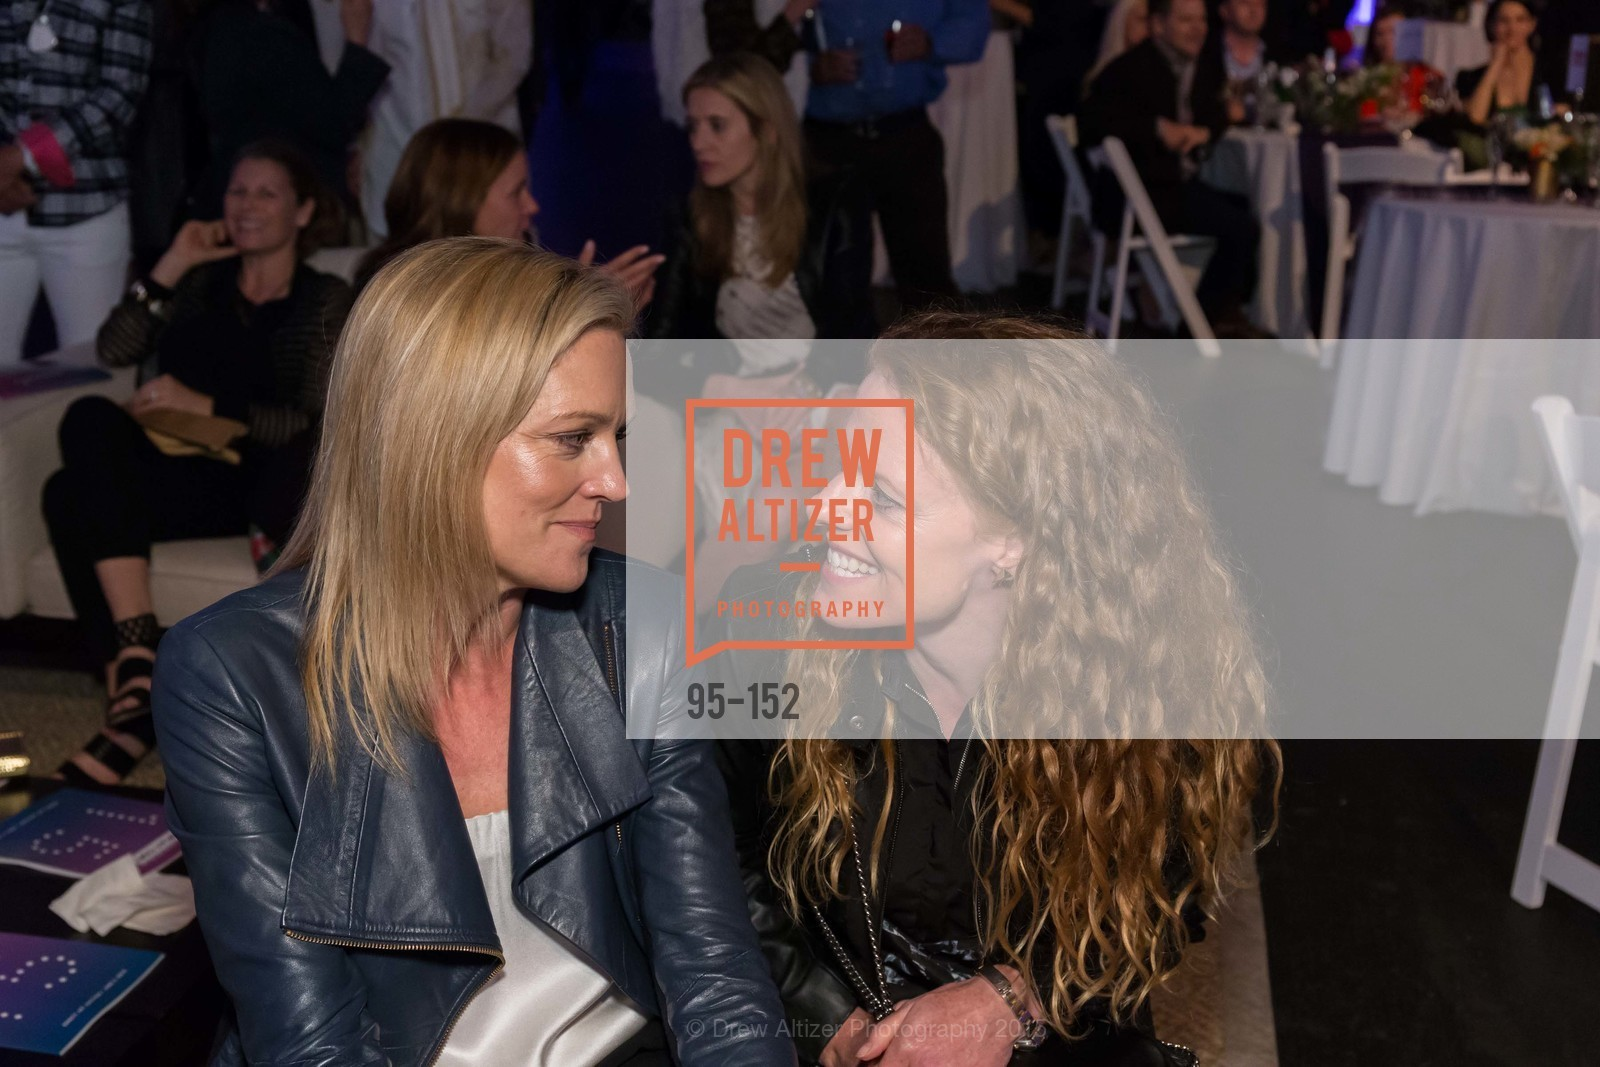 Maja Smith, Sarah Dilullo, Headlands Center for the Arts Benefit Auction, Fort Mason Festival, Pavilon, June 2nd, 2015,Drew Altizer, Drew Altizer Photography, full-service agency, private events, San Francisco photographer, photographer california